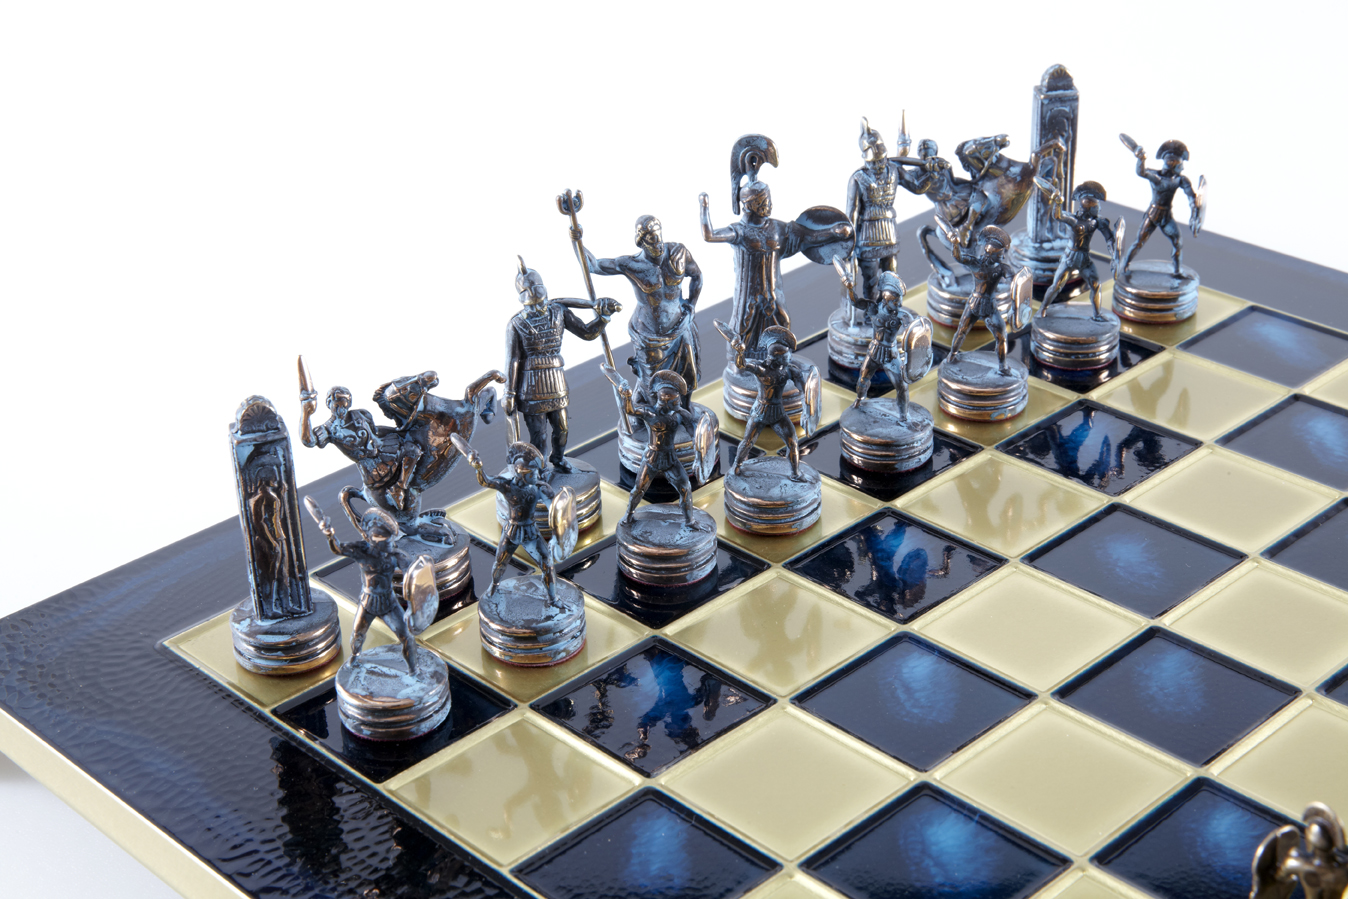 Greek Mythology chess set with blue-bronze chessmen/ Blue chessboard 36sm